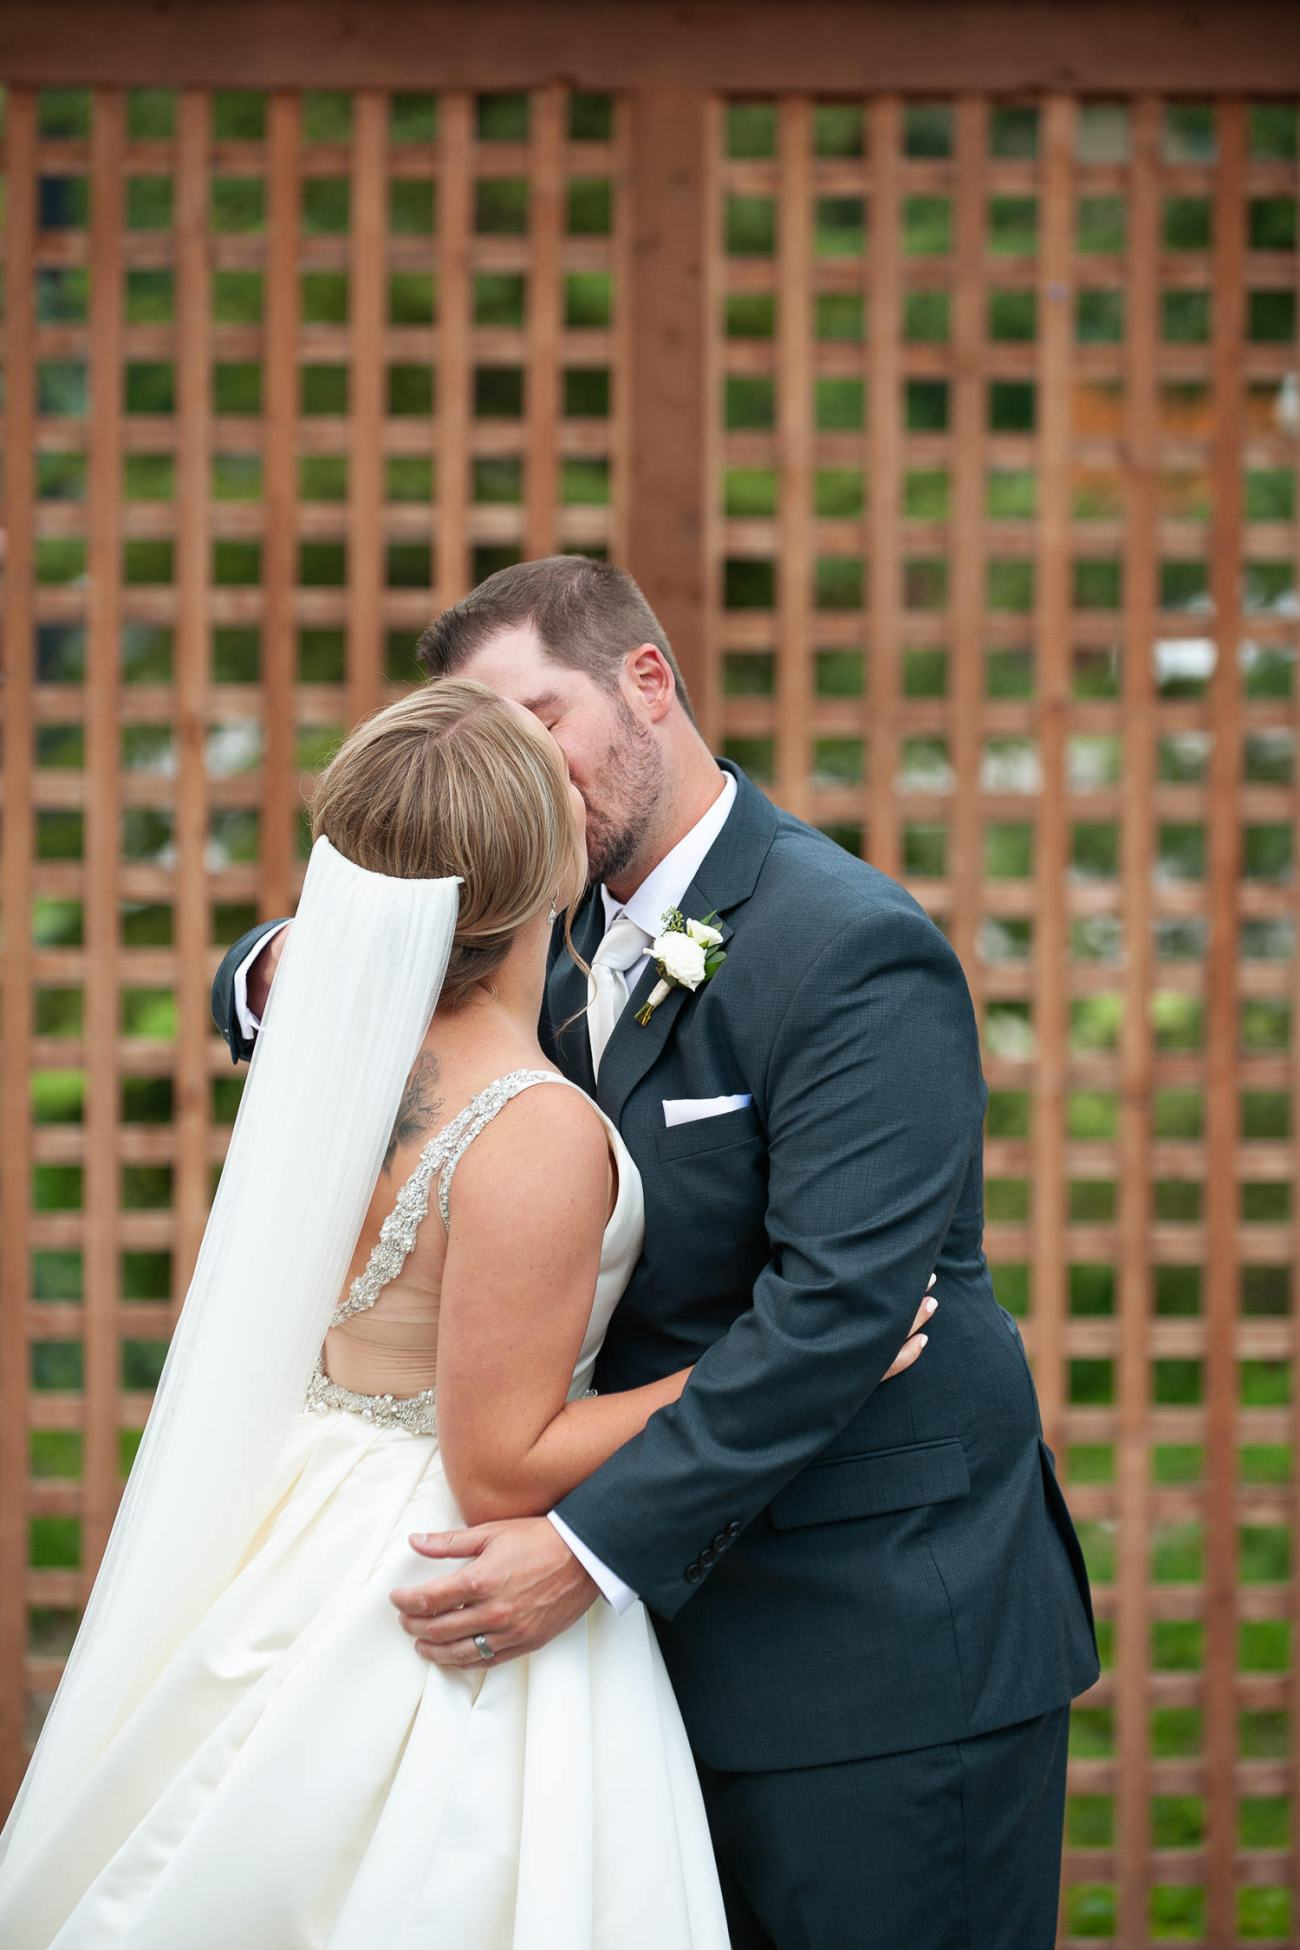 First kiss after a Creekside Villa wedding captured by Canmore wedding photographer Tara Whittaker